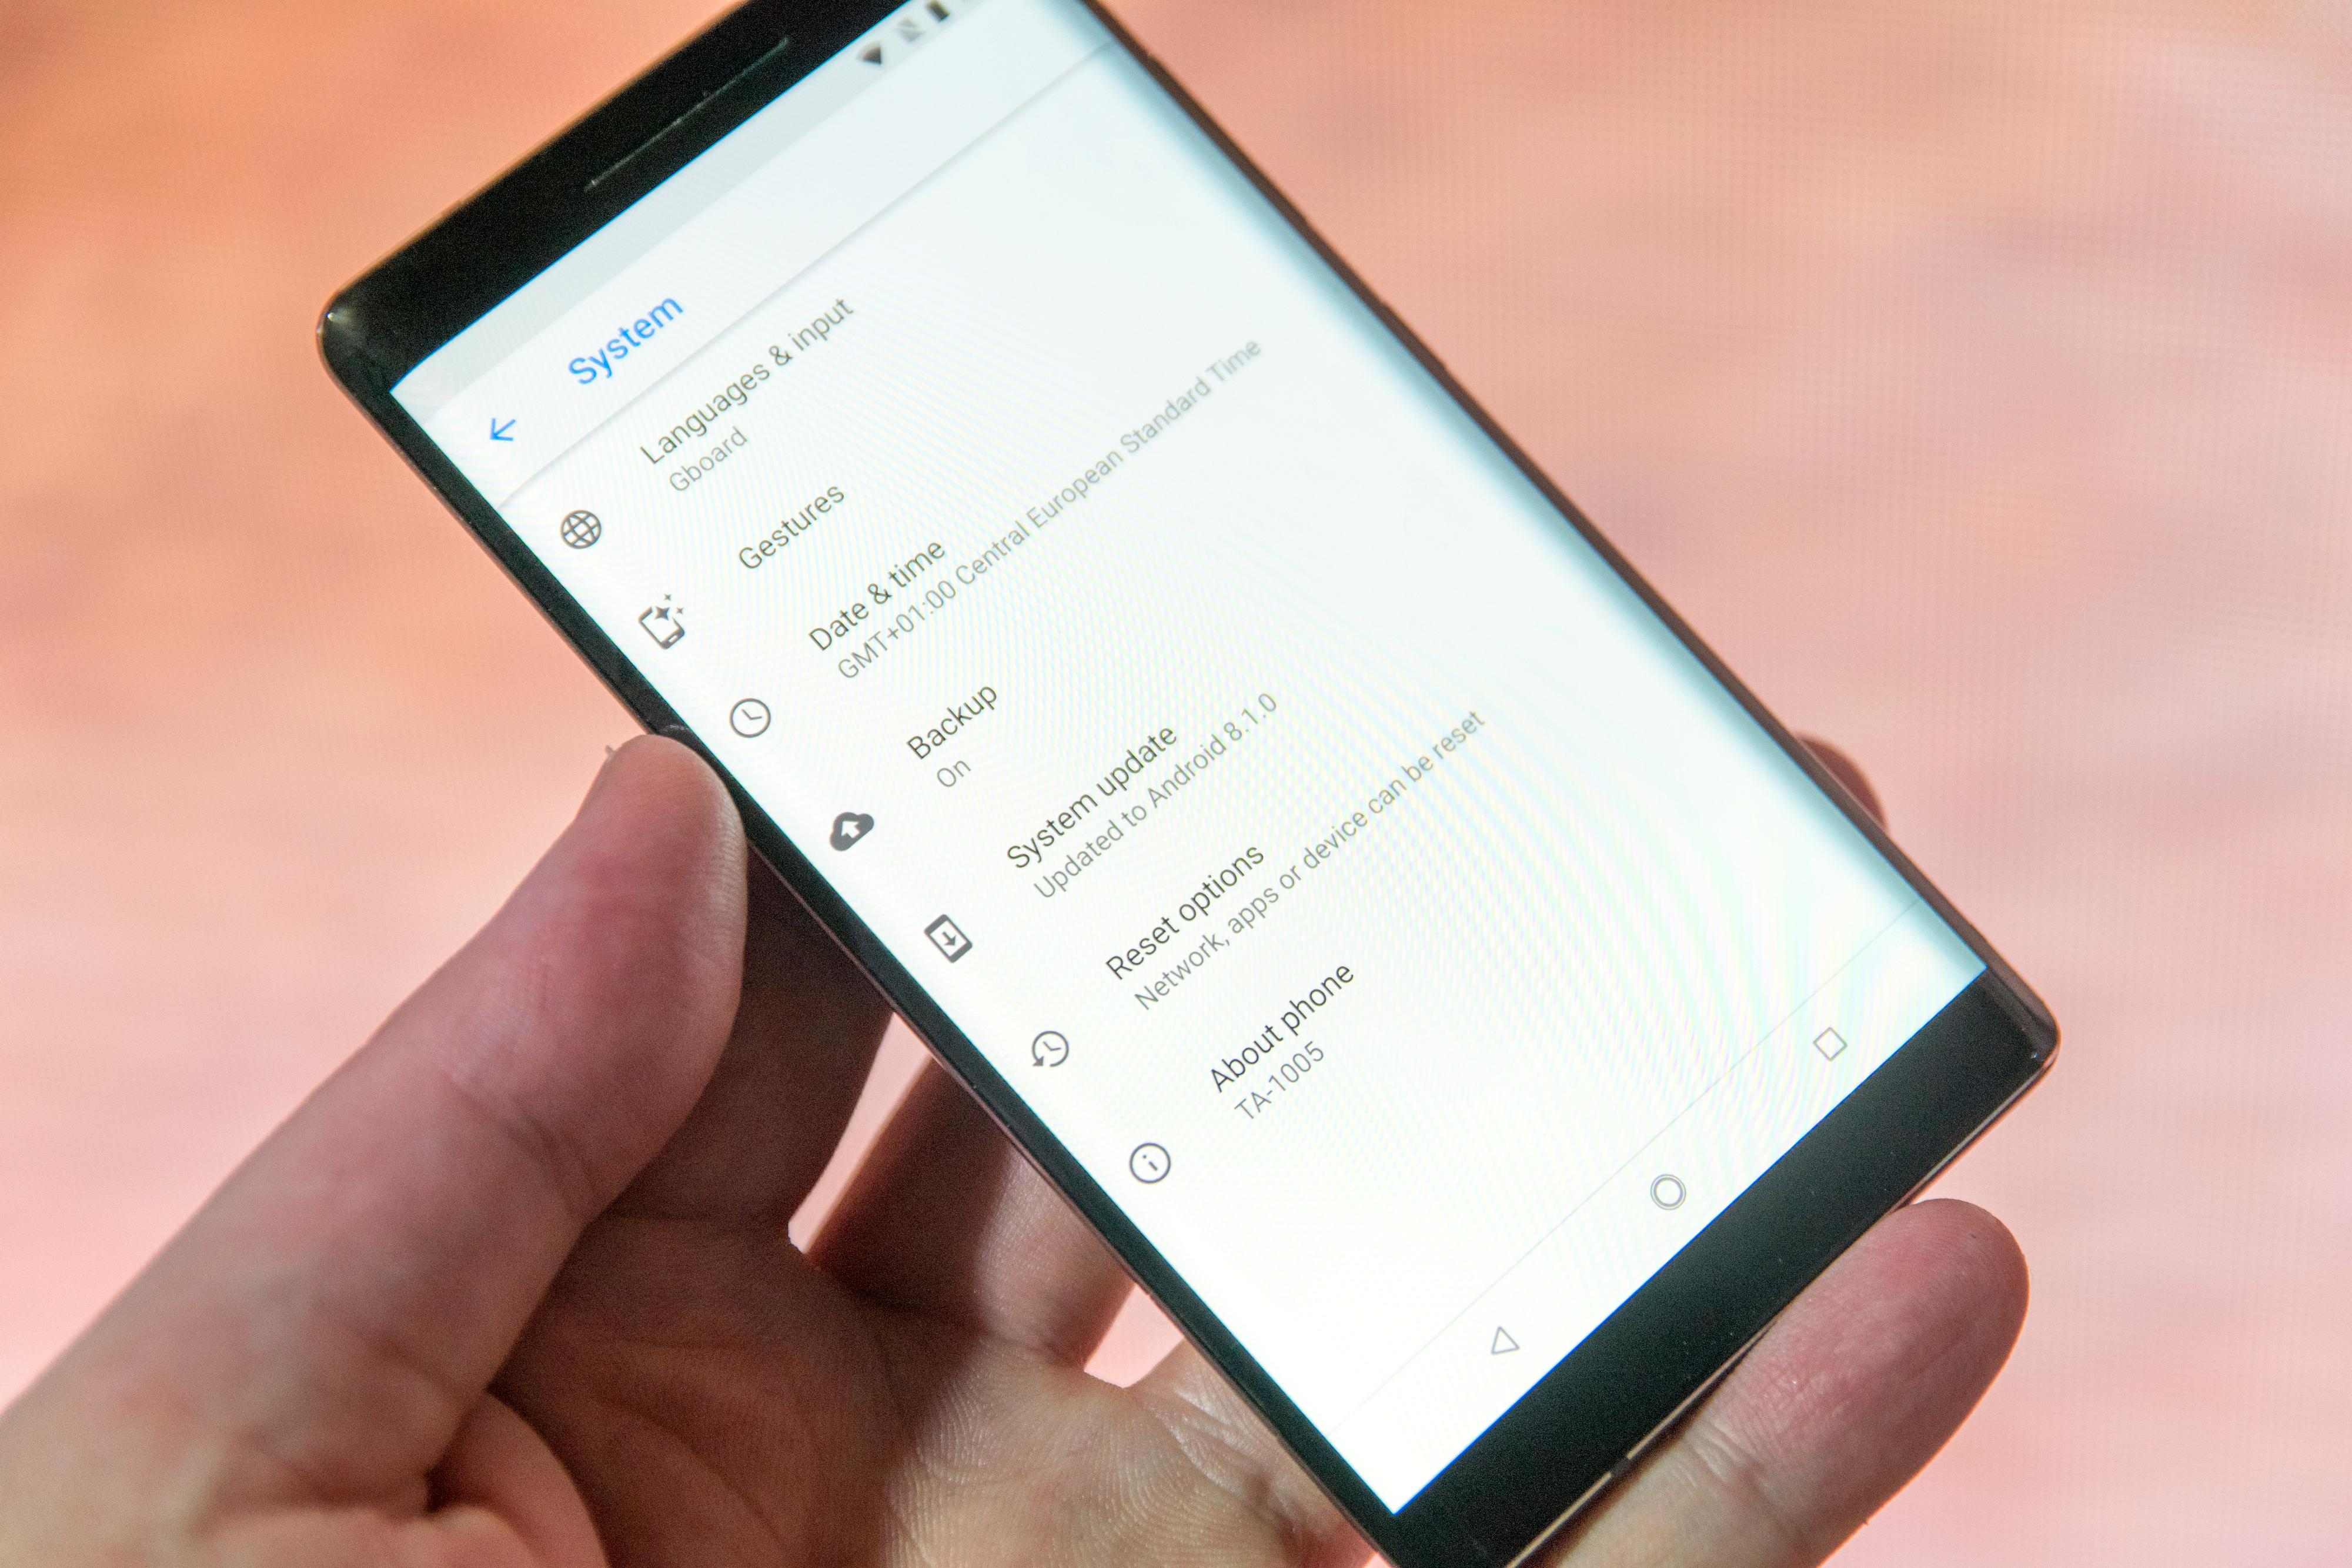 Alltid fersk Android. Nokia 8 Sirocco leveres med Android 8.1.